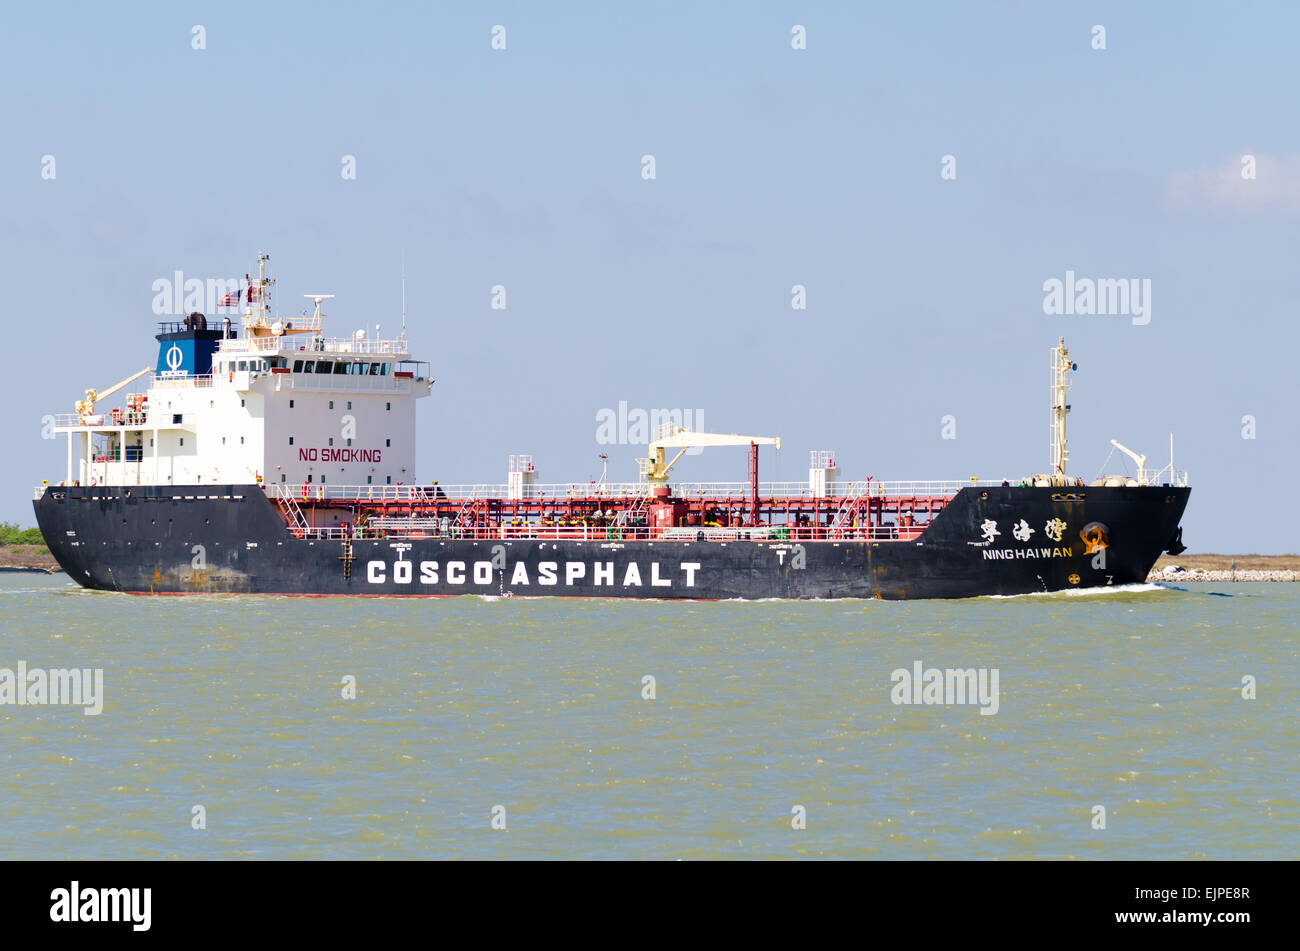 Asphalt / bitumen tanker Ning Hai Wan heading out toward the Gulf of Mexico in the Corpus Christi ship channel. - Stock Image